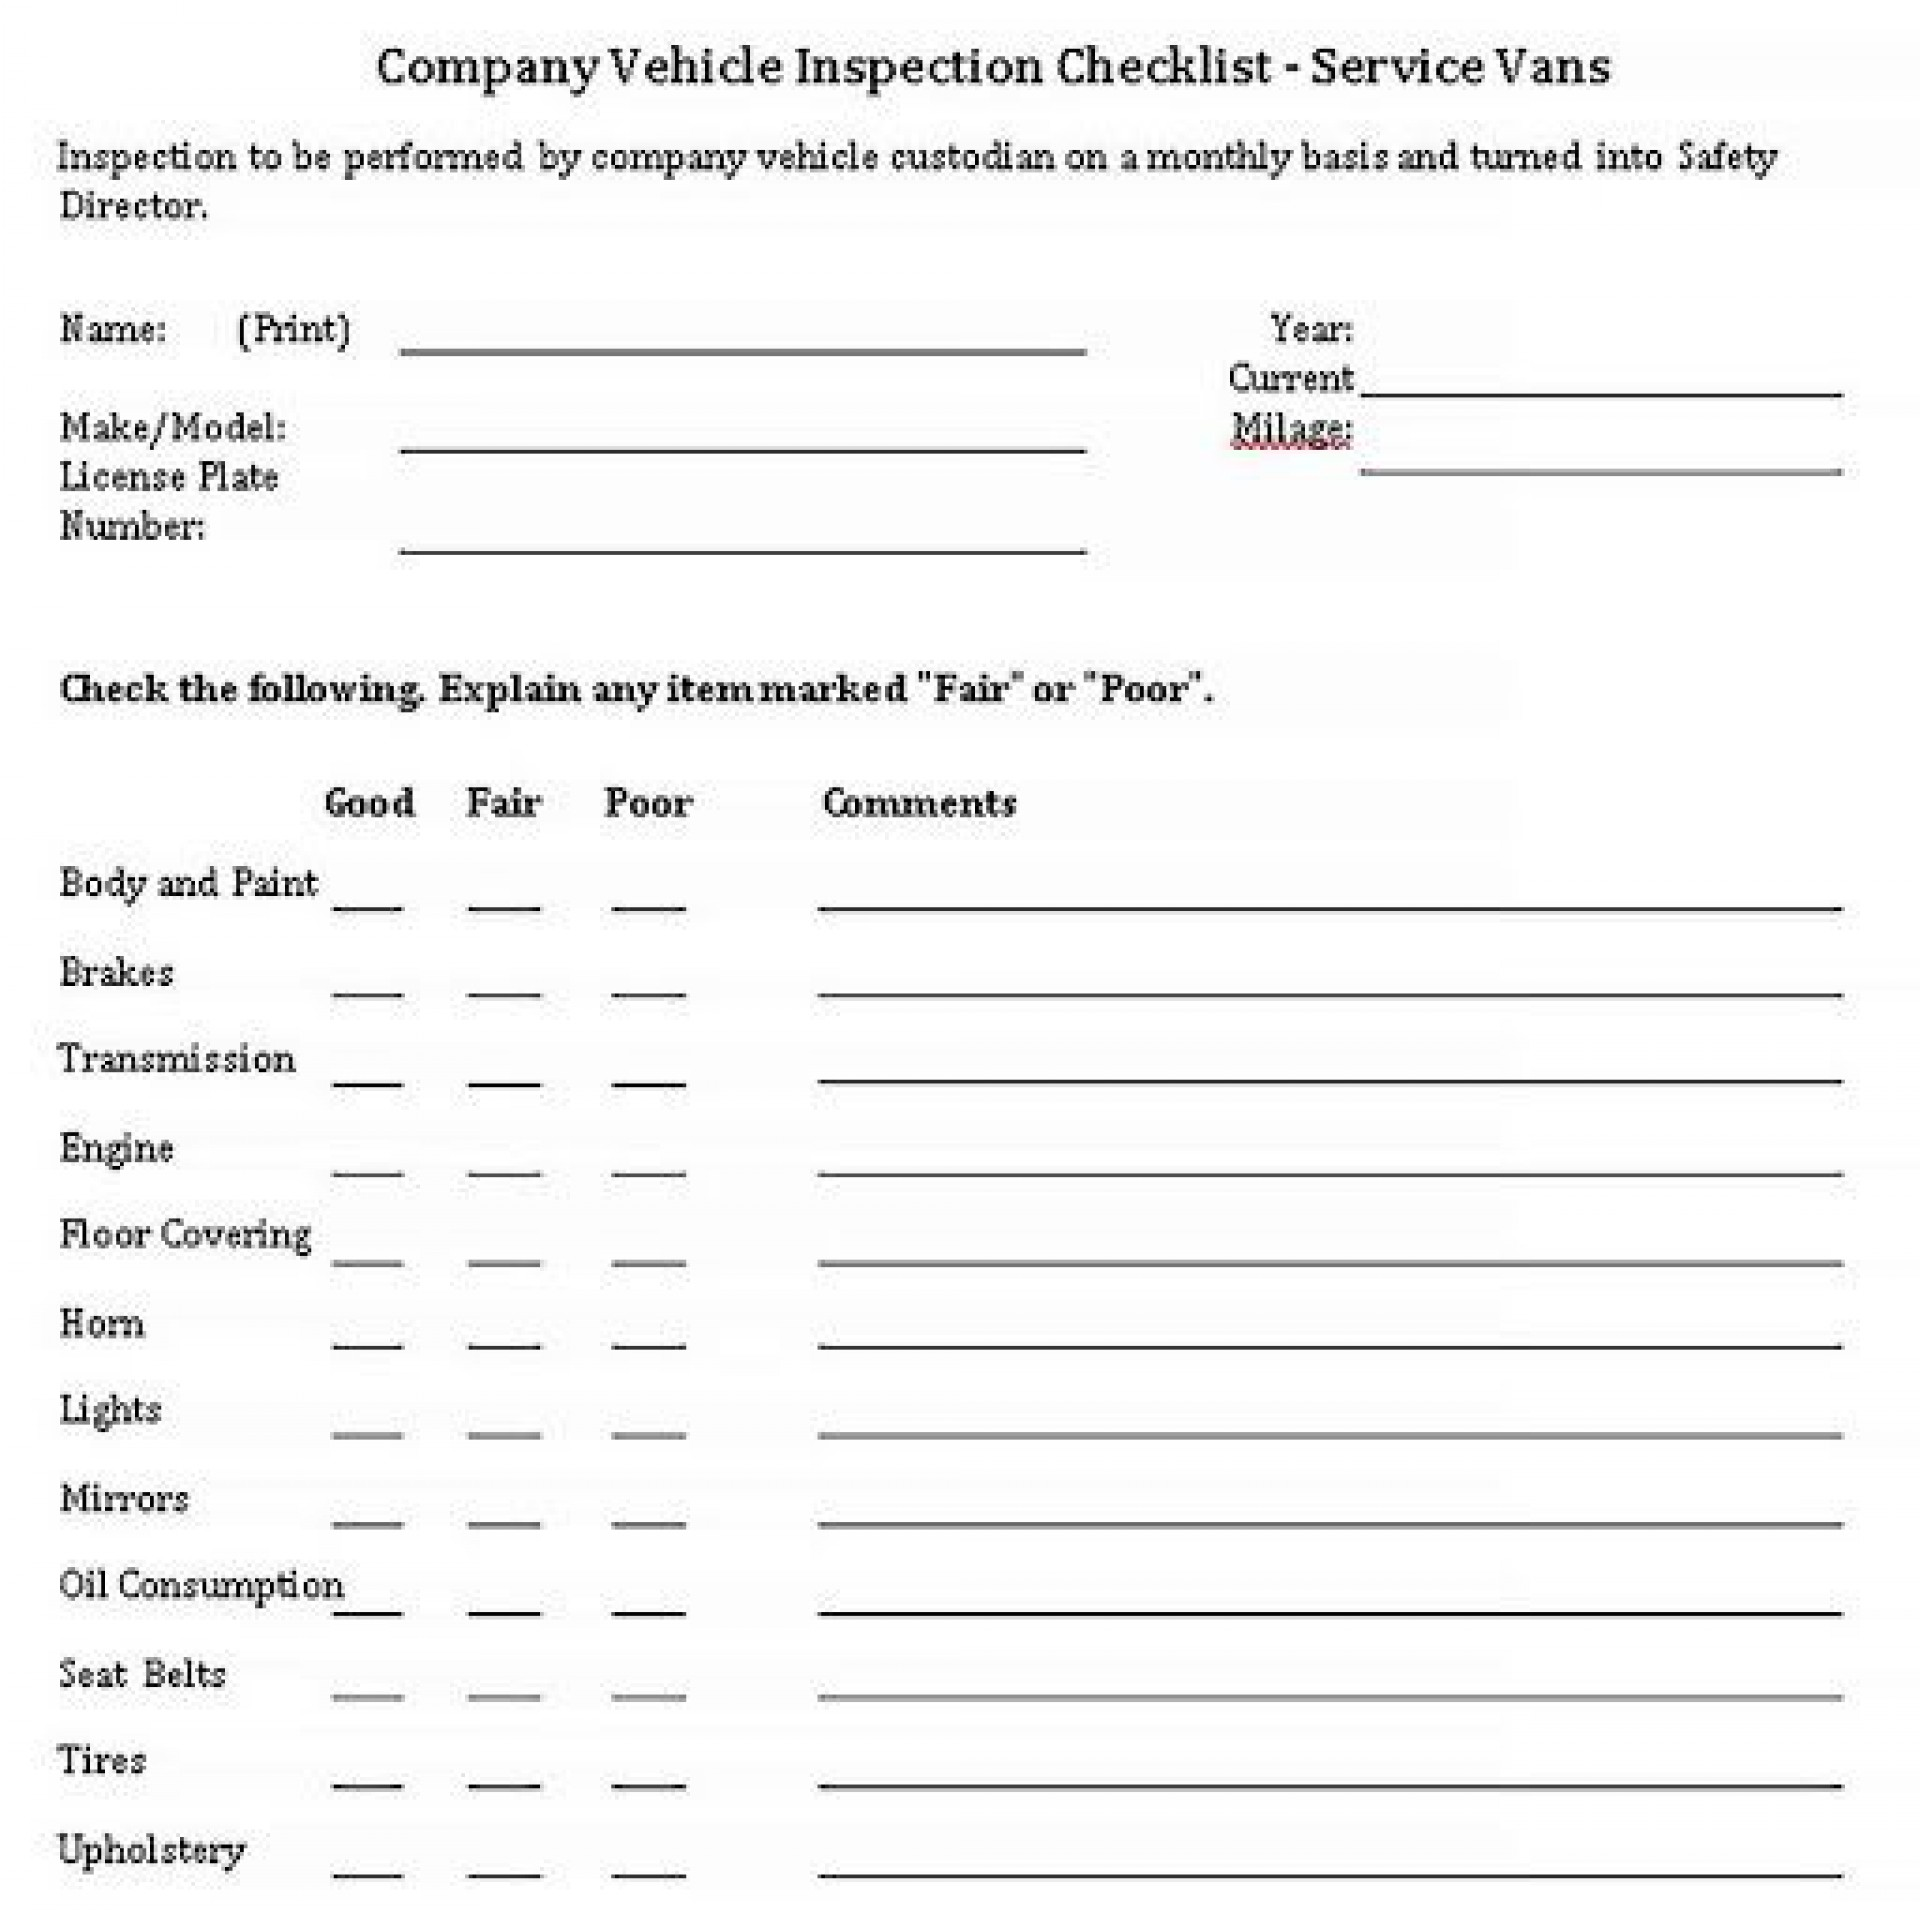 008 Fearsome Vehicle Inspection Form Template Free Inspiration 1920